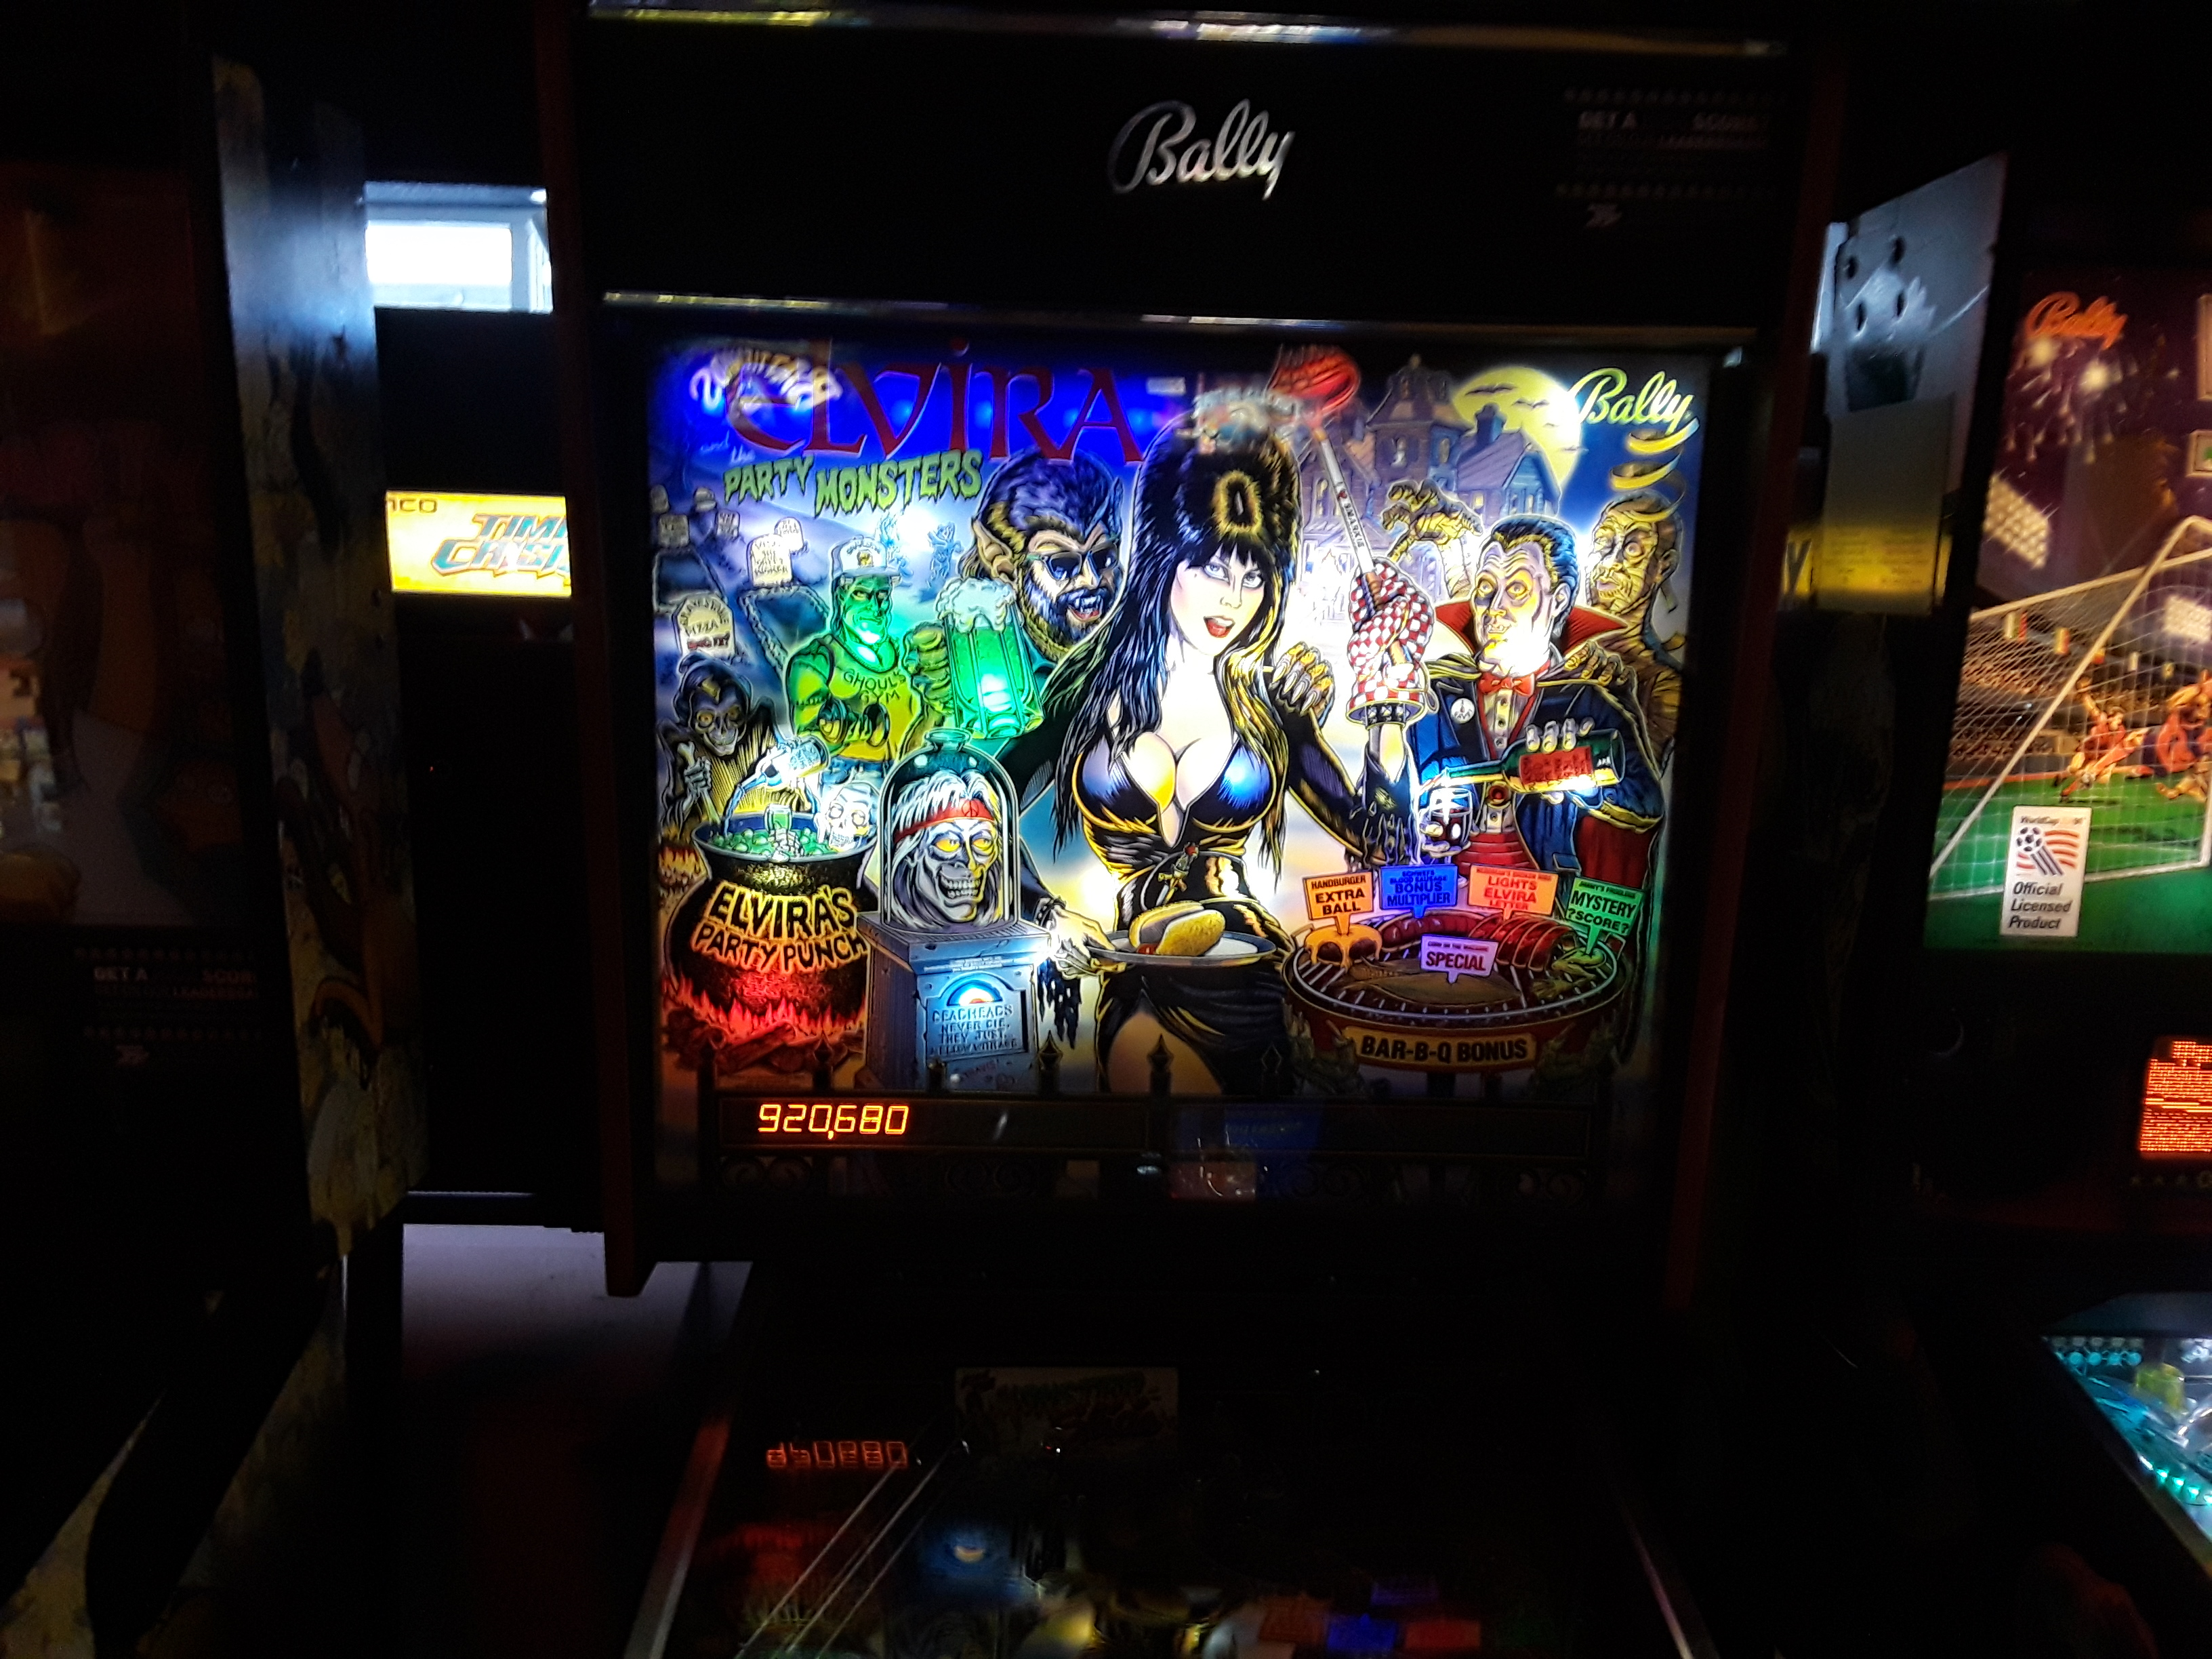 JML101582: Elvira and the Party Monsters (Pinball: 3 Balls) 920,680 points on 2018-08-18 19:08:50